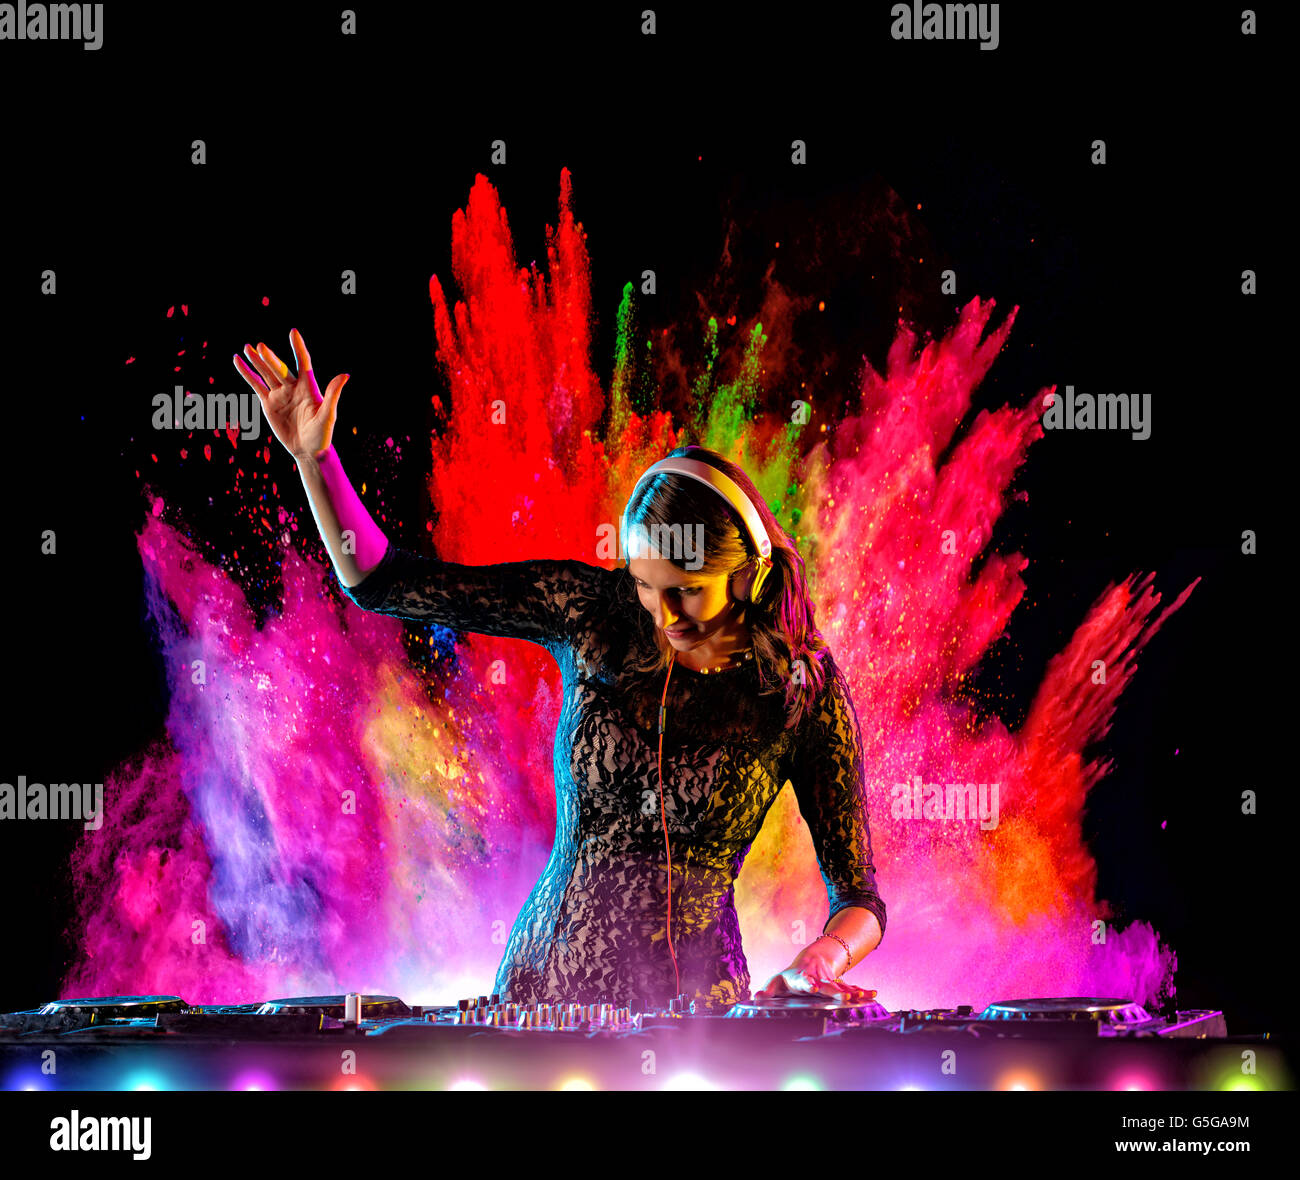 Disc jockey brunette girl mixing electronic music with colored powder explosion on background - Stock Image